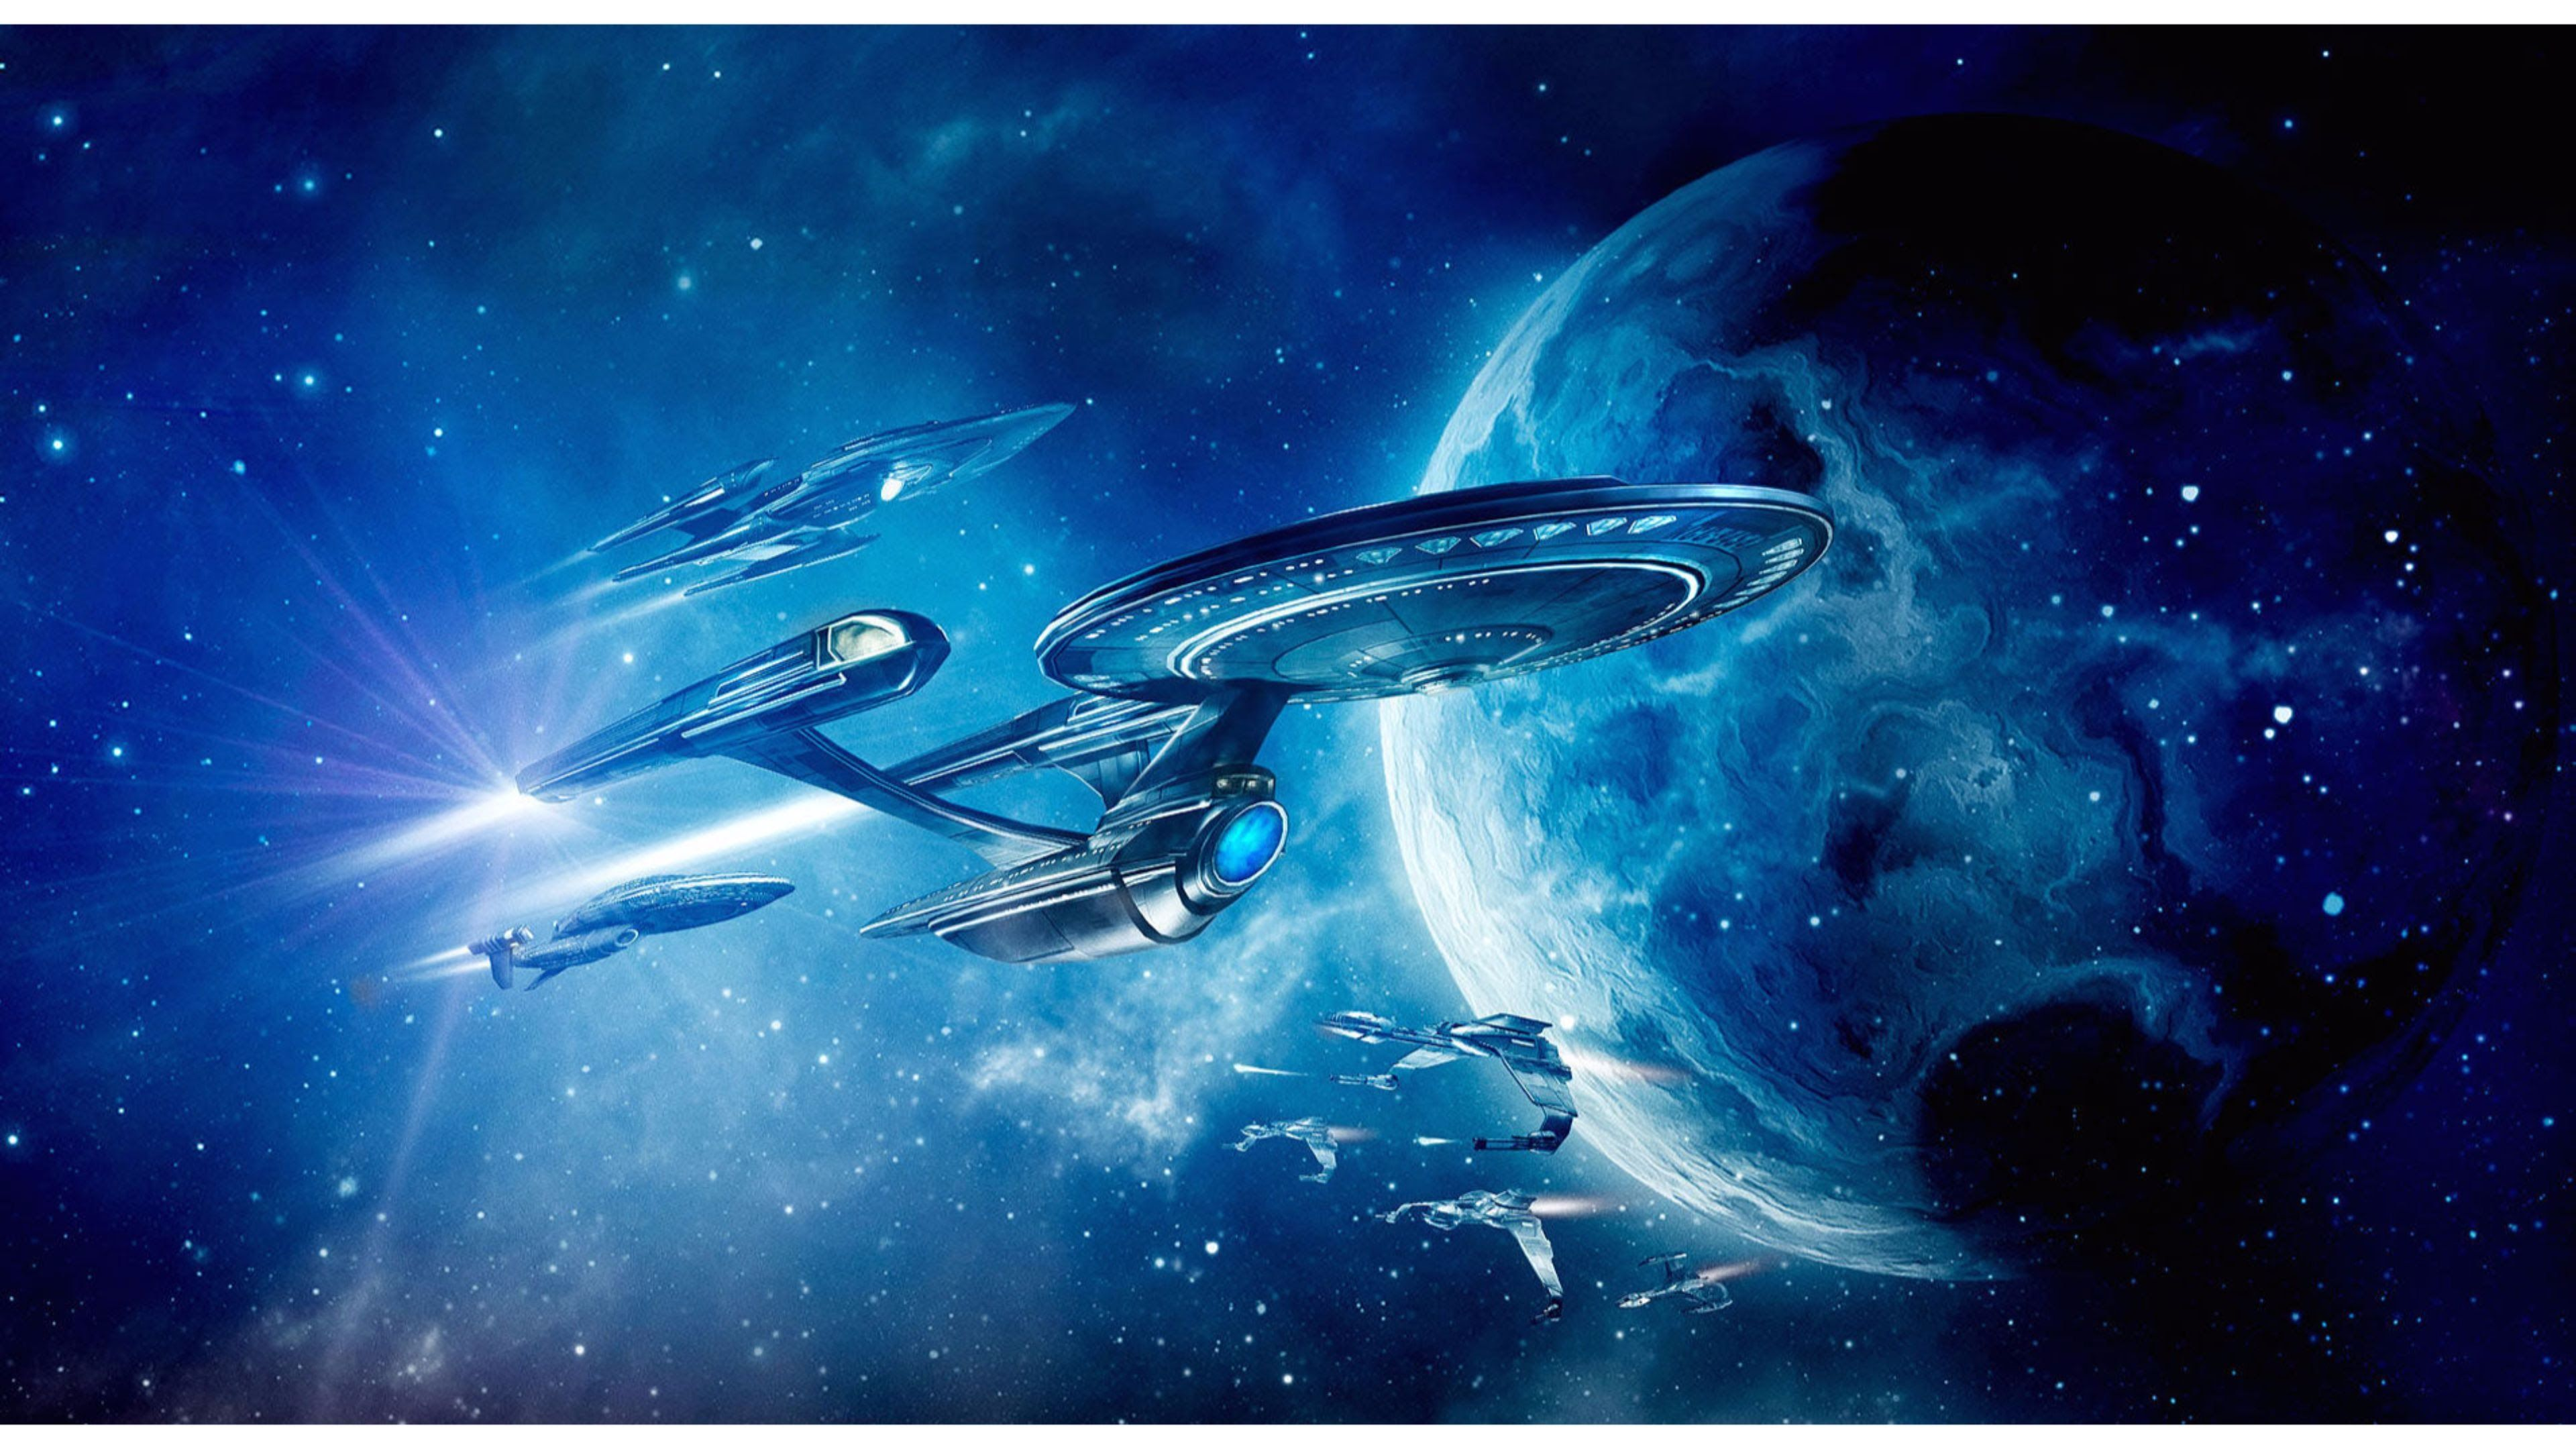 Star Trek Wallpaper HD Star trek wallpaper, Star trek